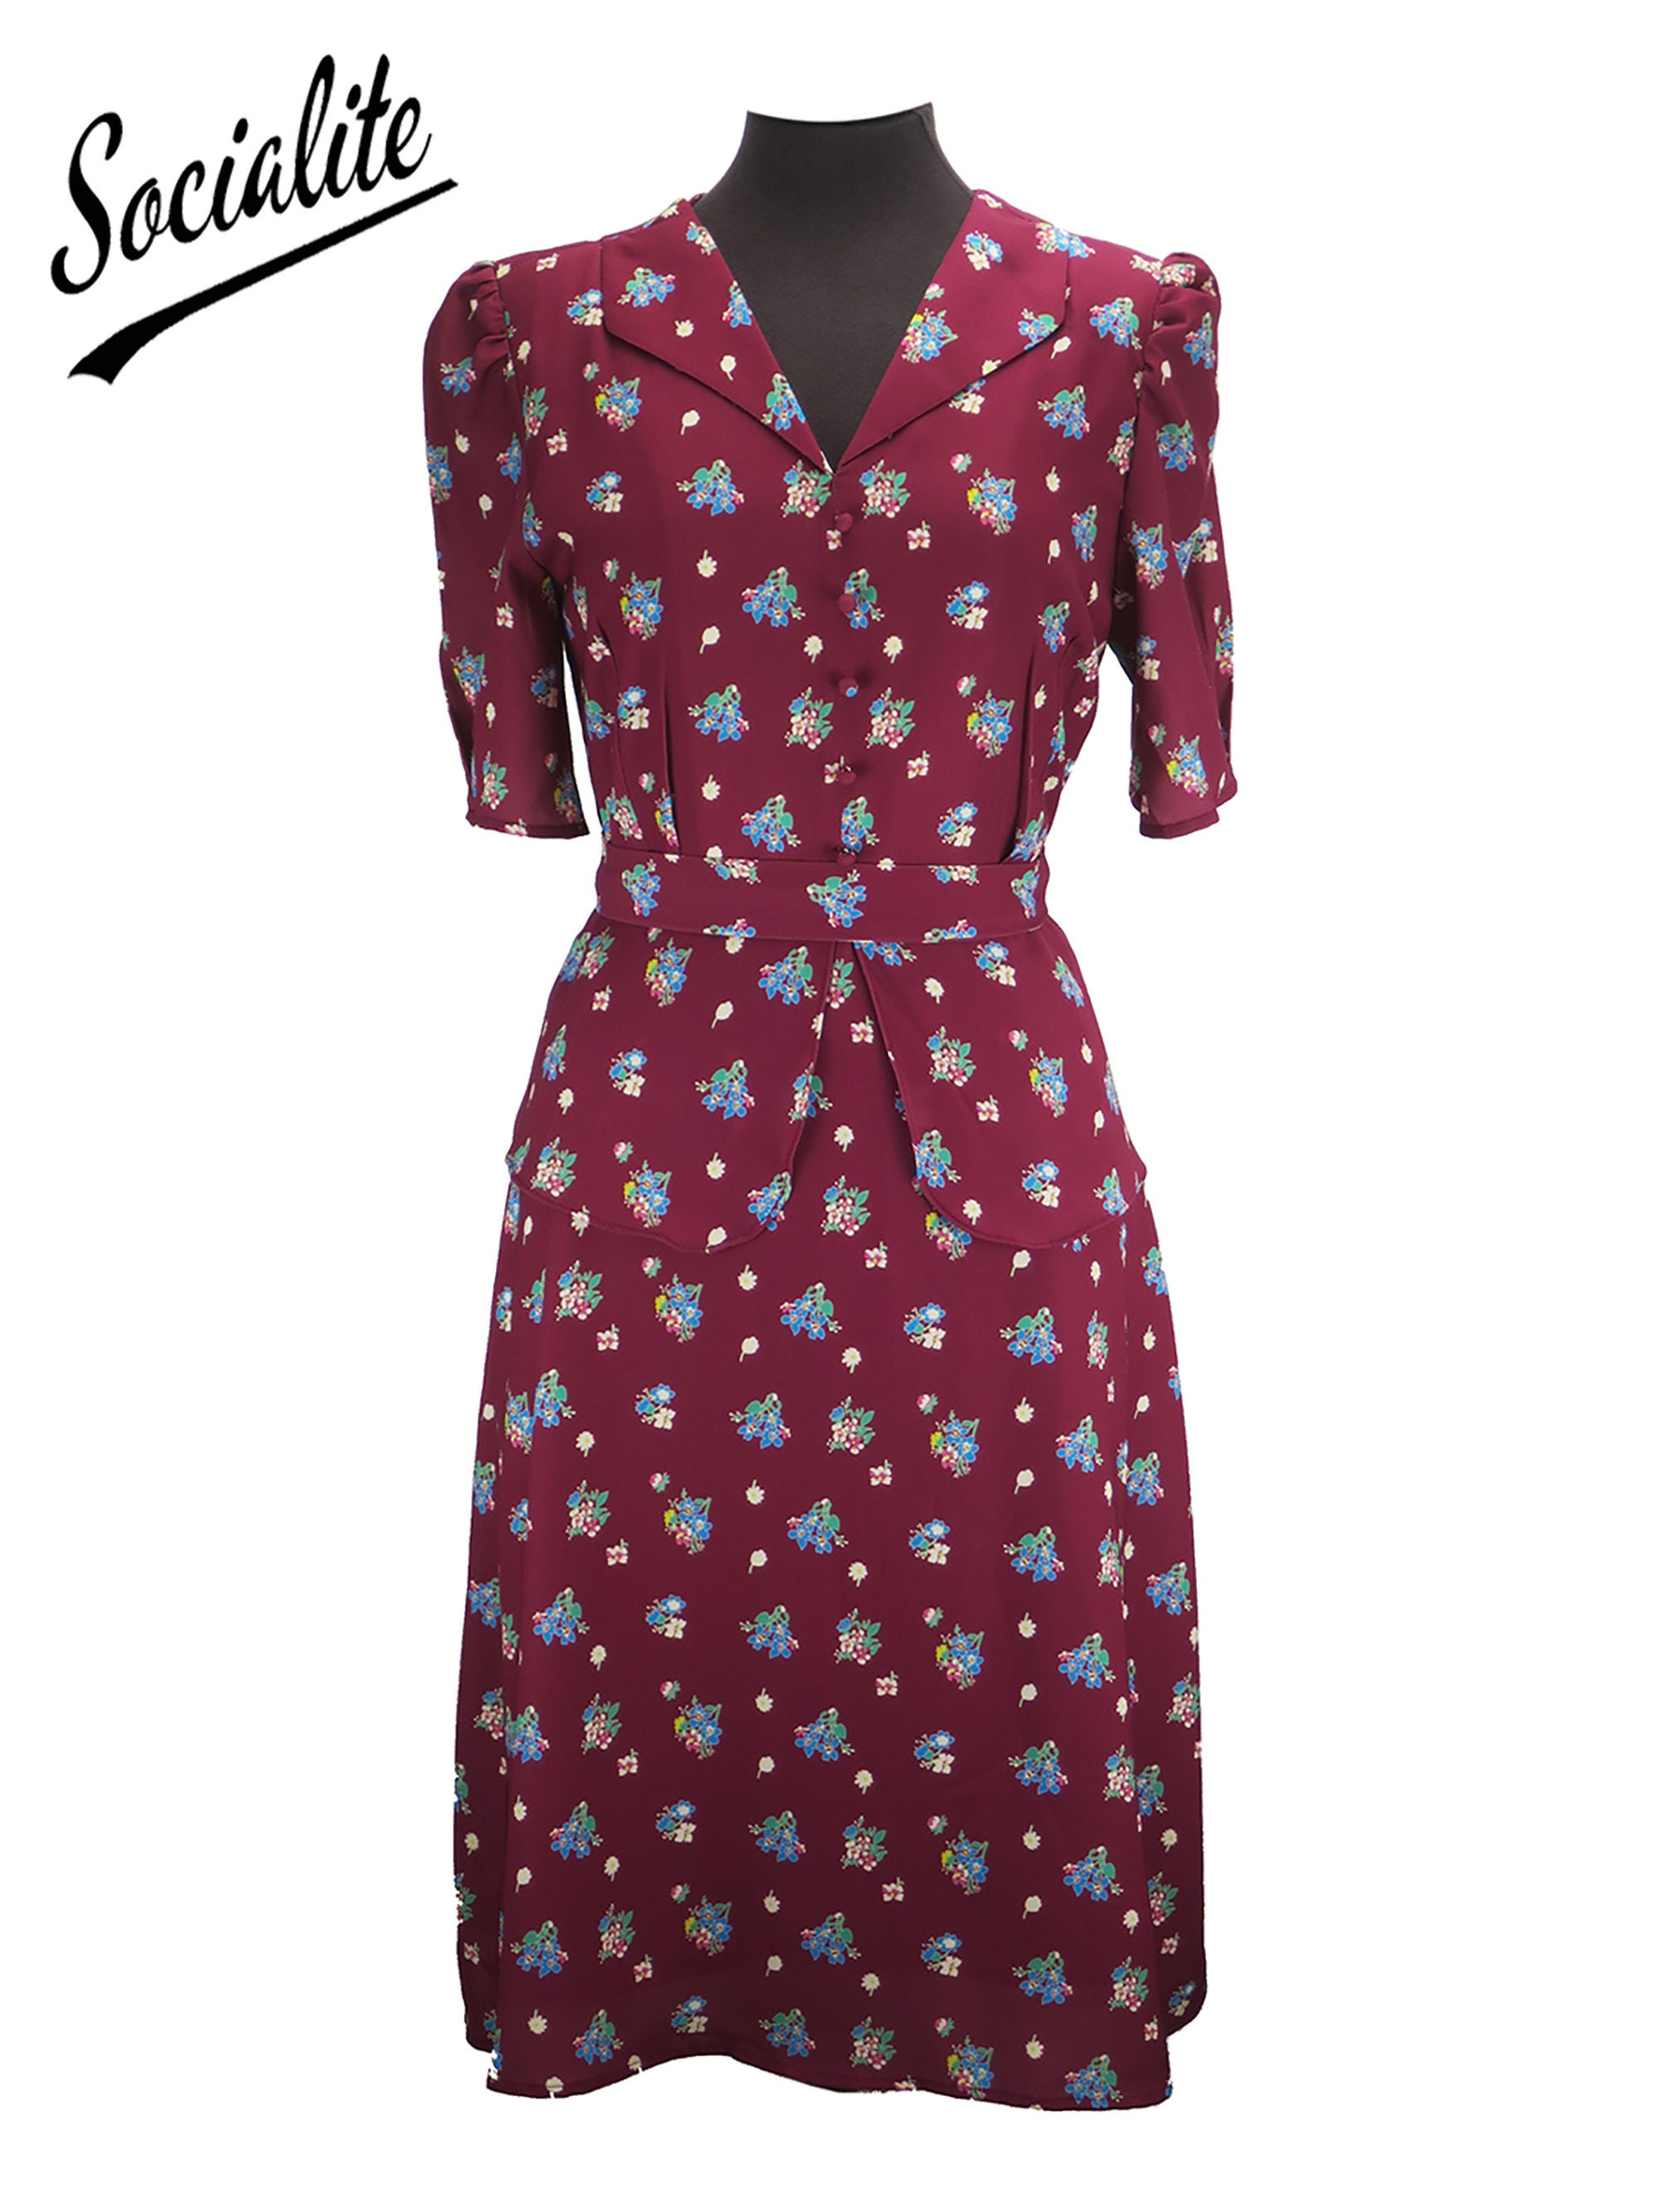 Swing Dance Clothing You Can Dance In Revival Socialite Replica 1940s Vintage Floral Symphony Peplum Dress $113.99 AT vintagedancer.com